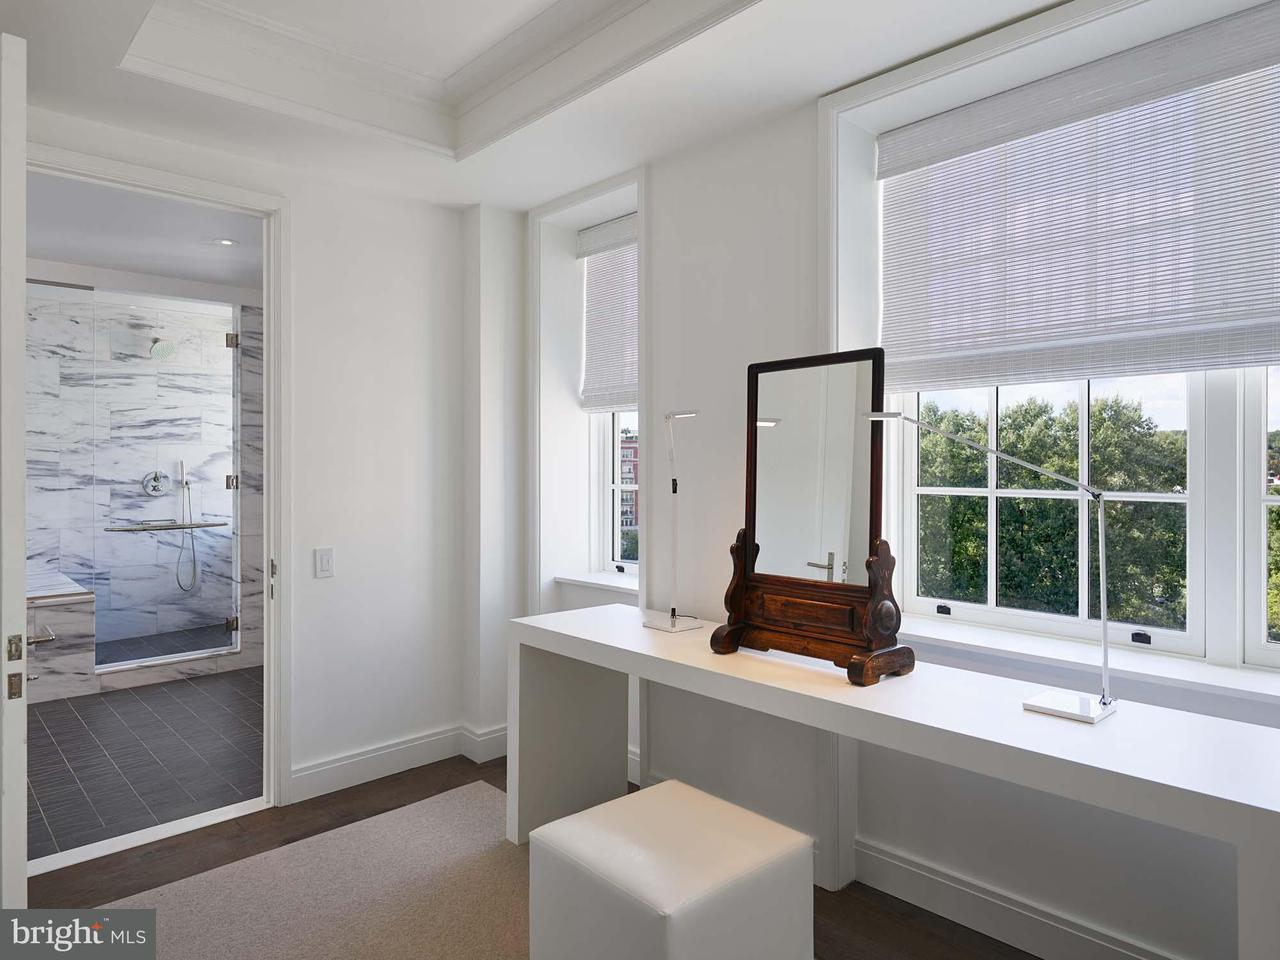 Additional photo for property listing at 2660 Connecticut Ave Nw #7c 2660 Connecticut Ave Nw #7c Washington, District Of Columbia 20008 United States